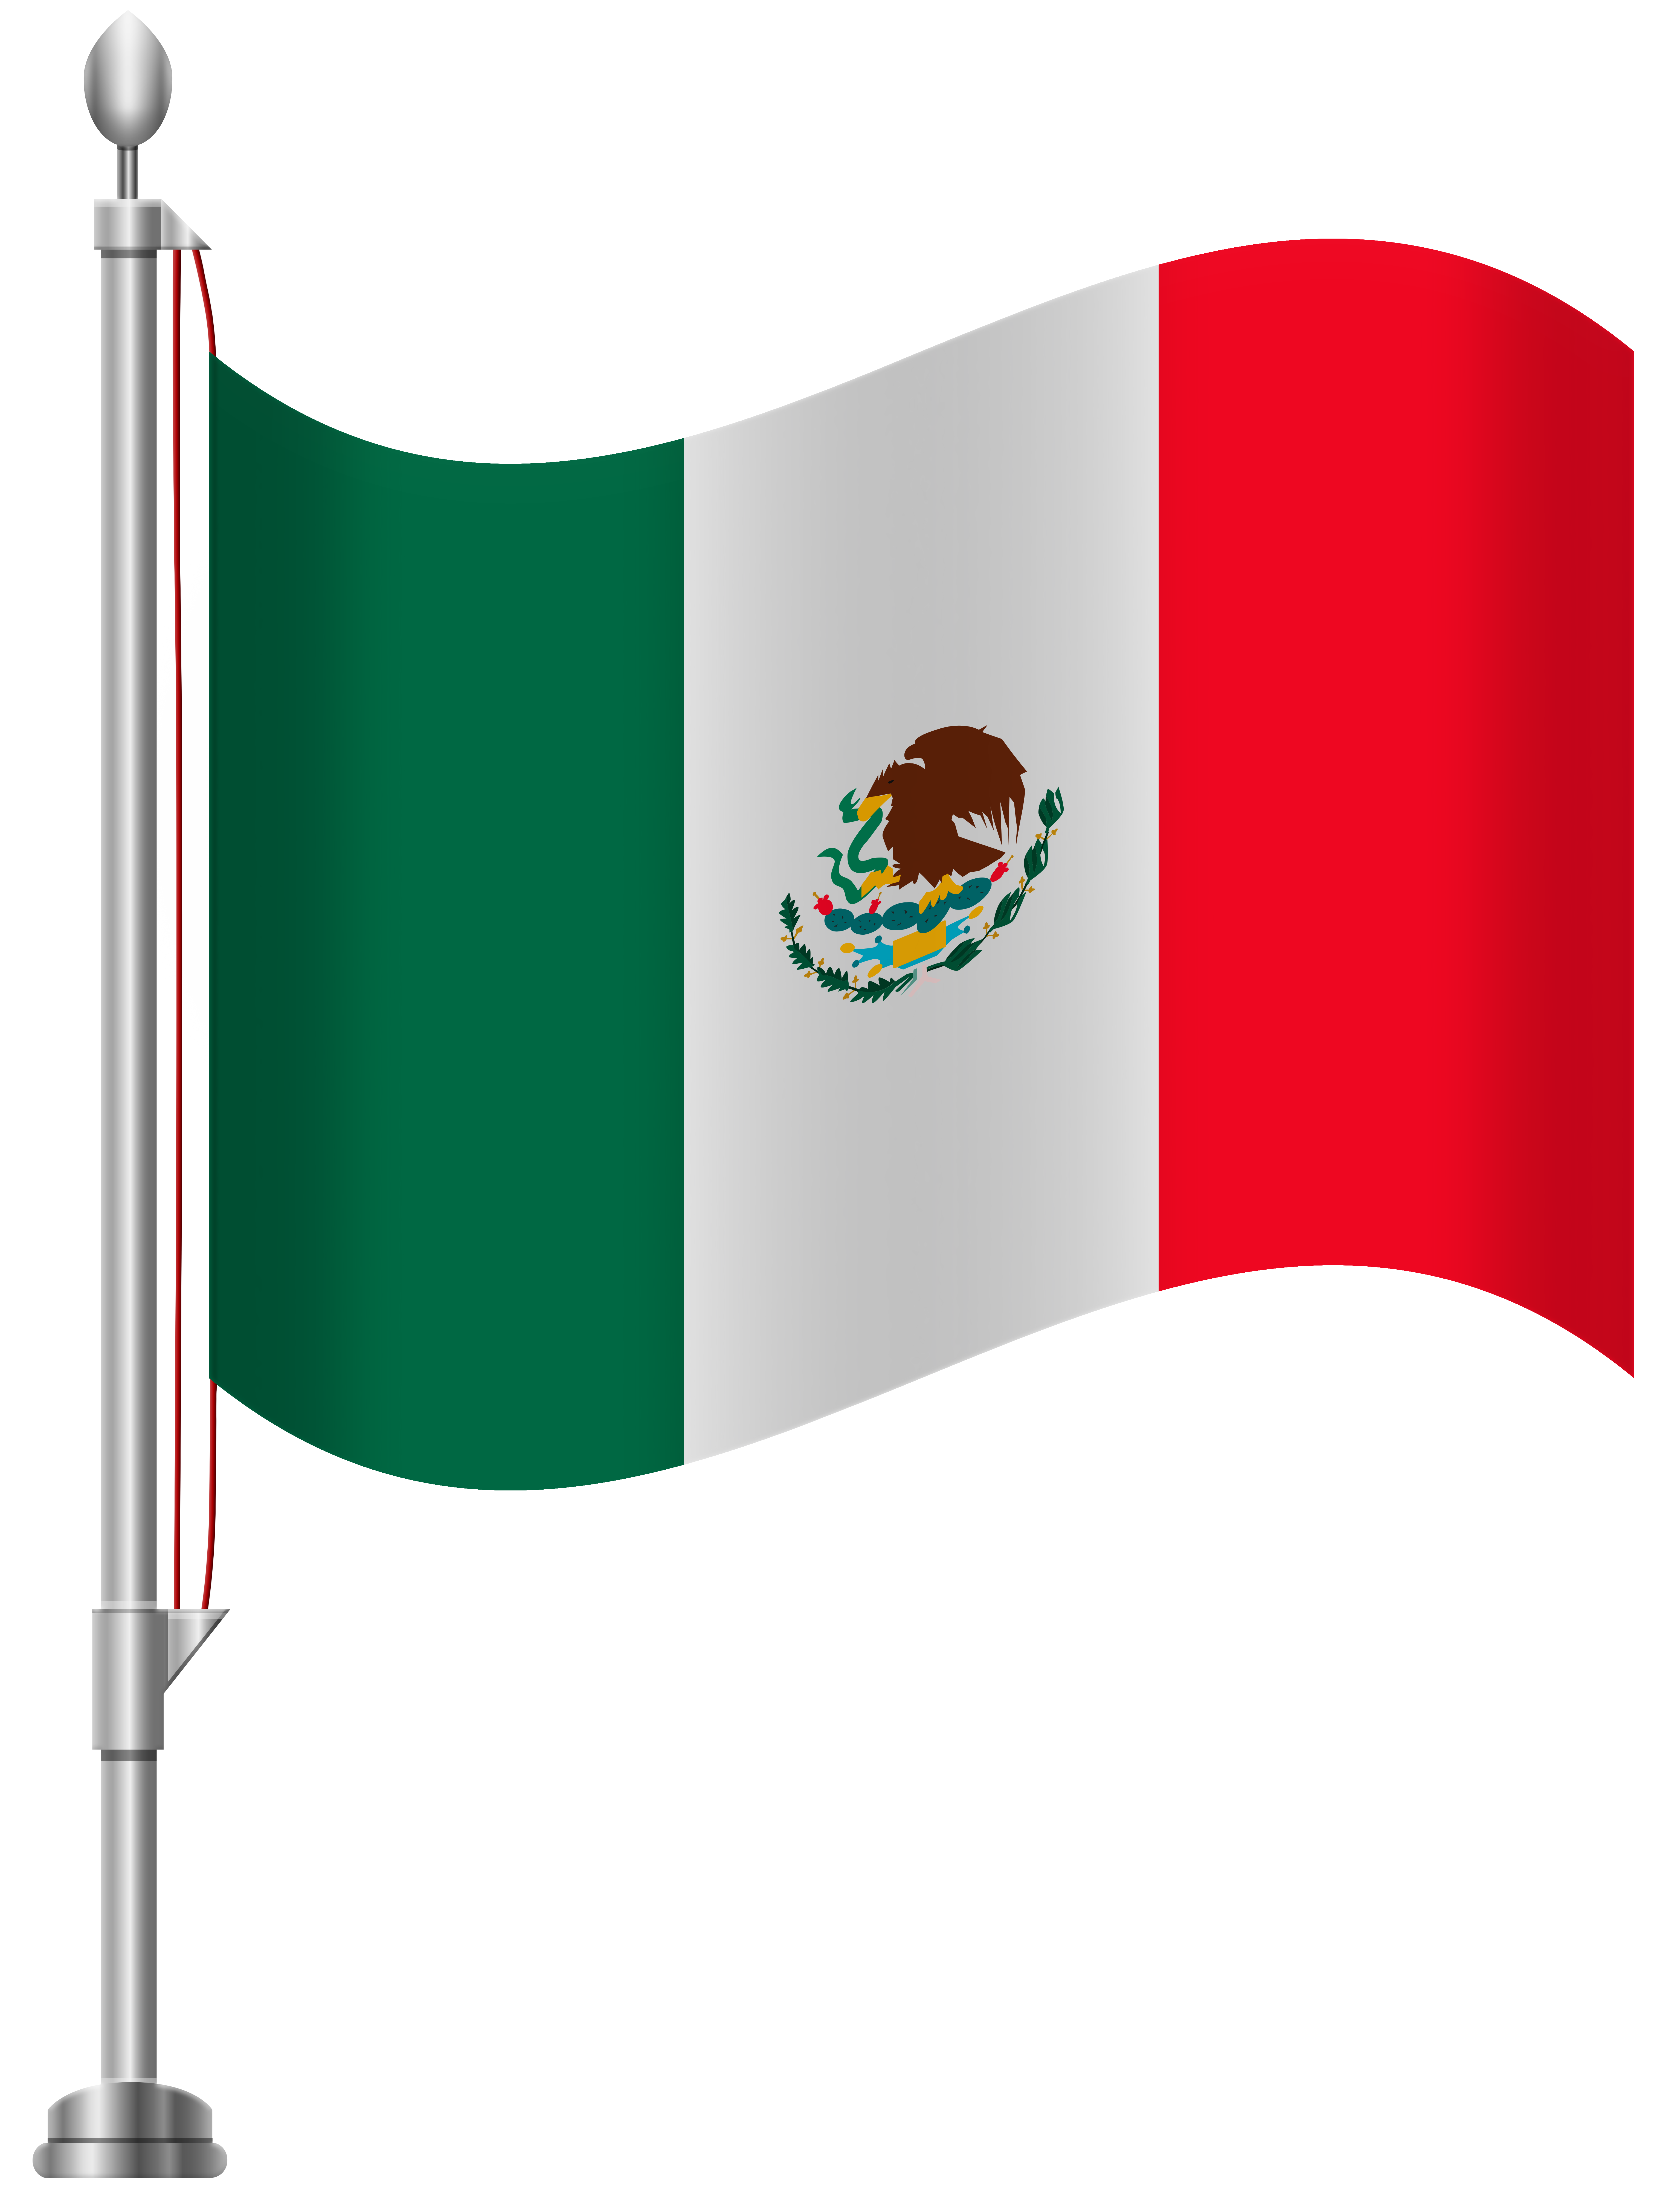 Mexican clipart instrument mexican. Outdoor flag pole lighting